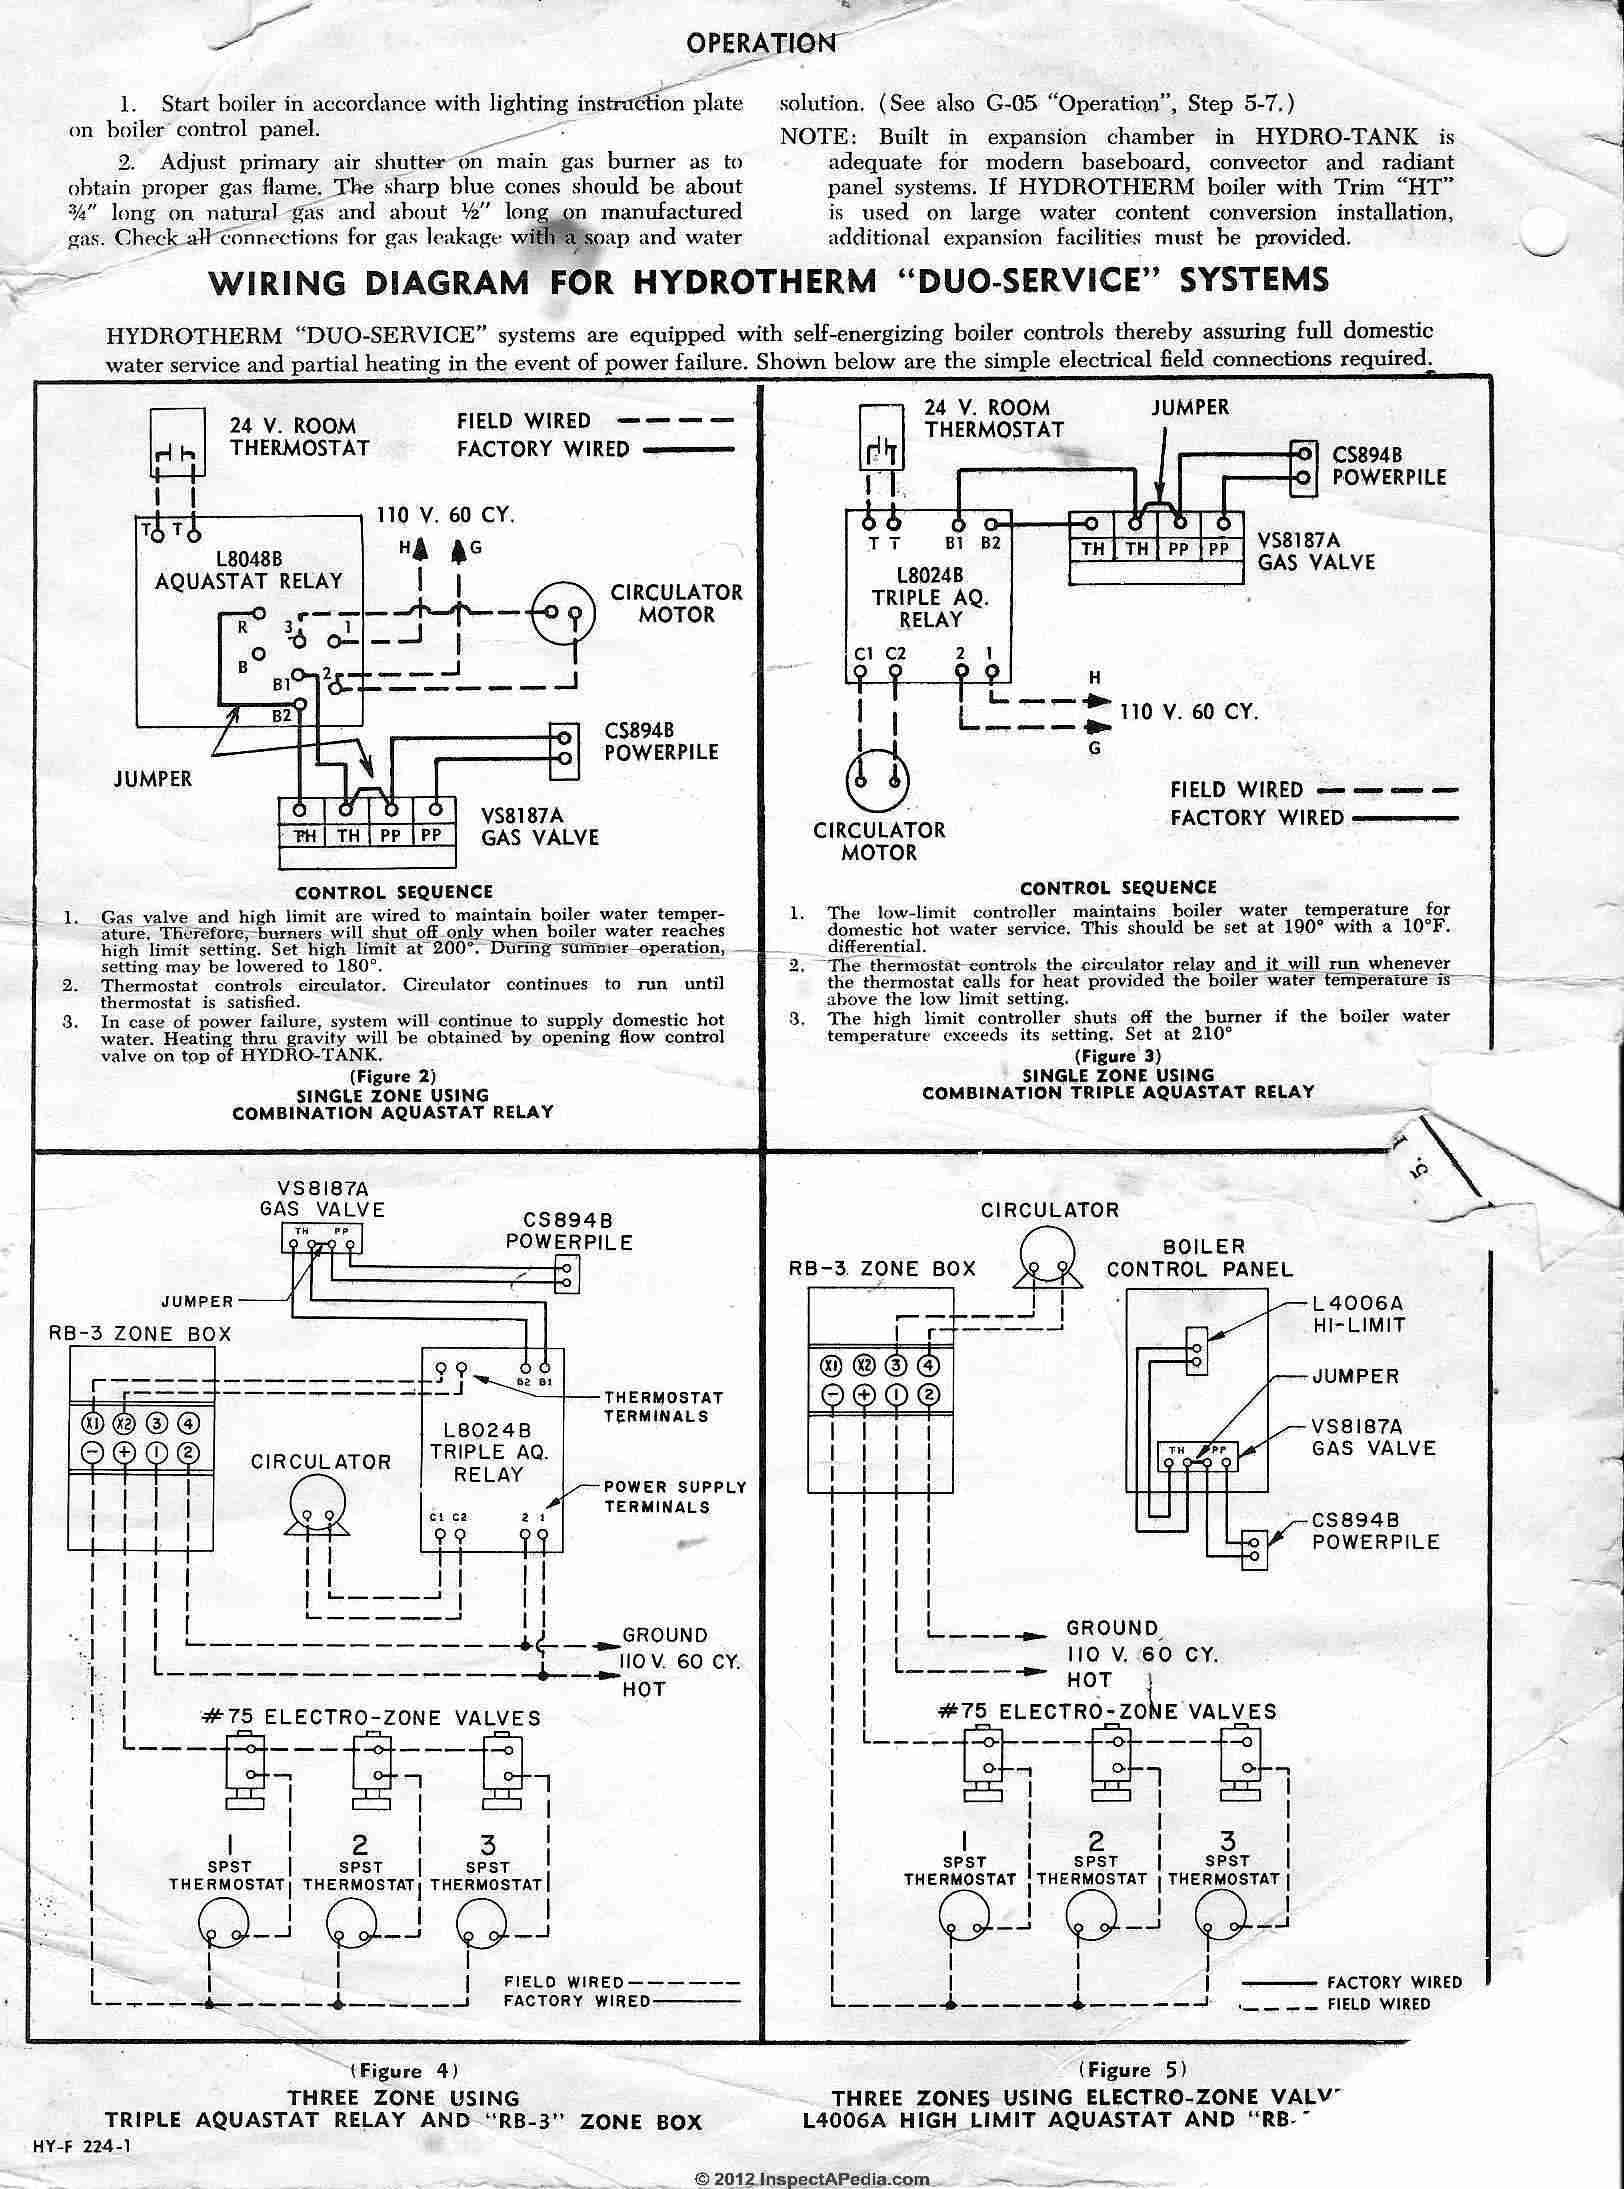 L8024B_Aquastat_0422_DJFcs heating boiler aquastat control diagnosis, troubleshooting, repair imit boiler thermostat wiring diagram at cos-gaming.co